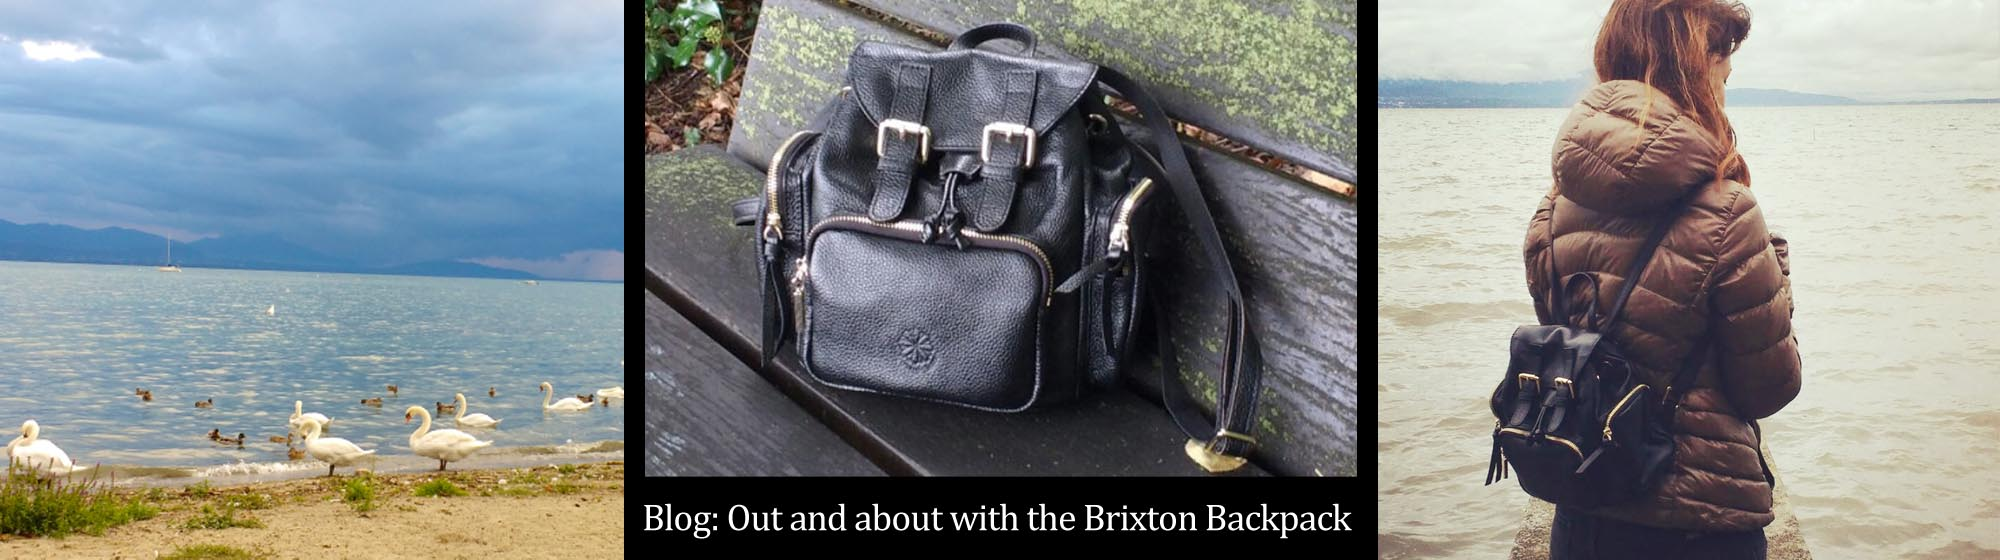 out-and-about-with-the-brixton-backpack-blog1